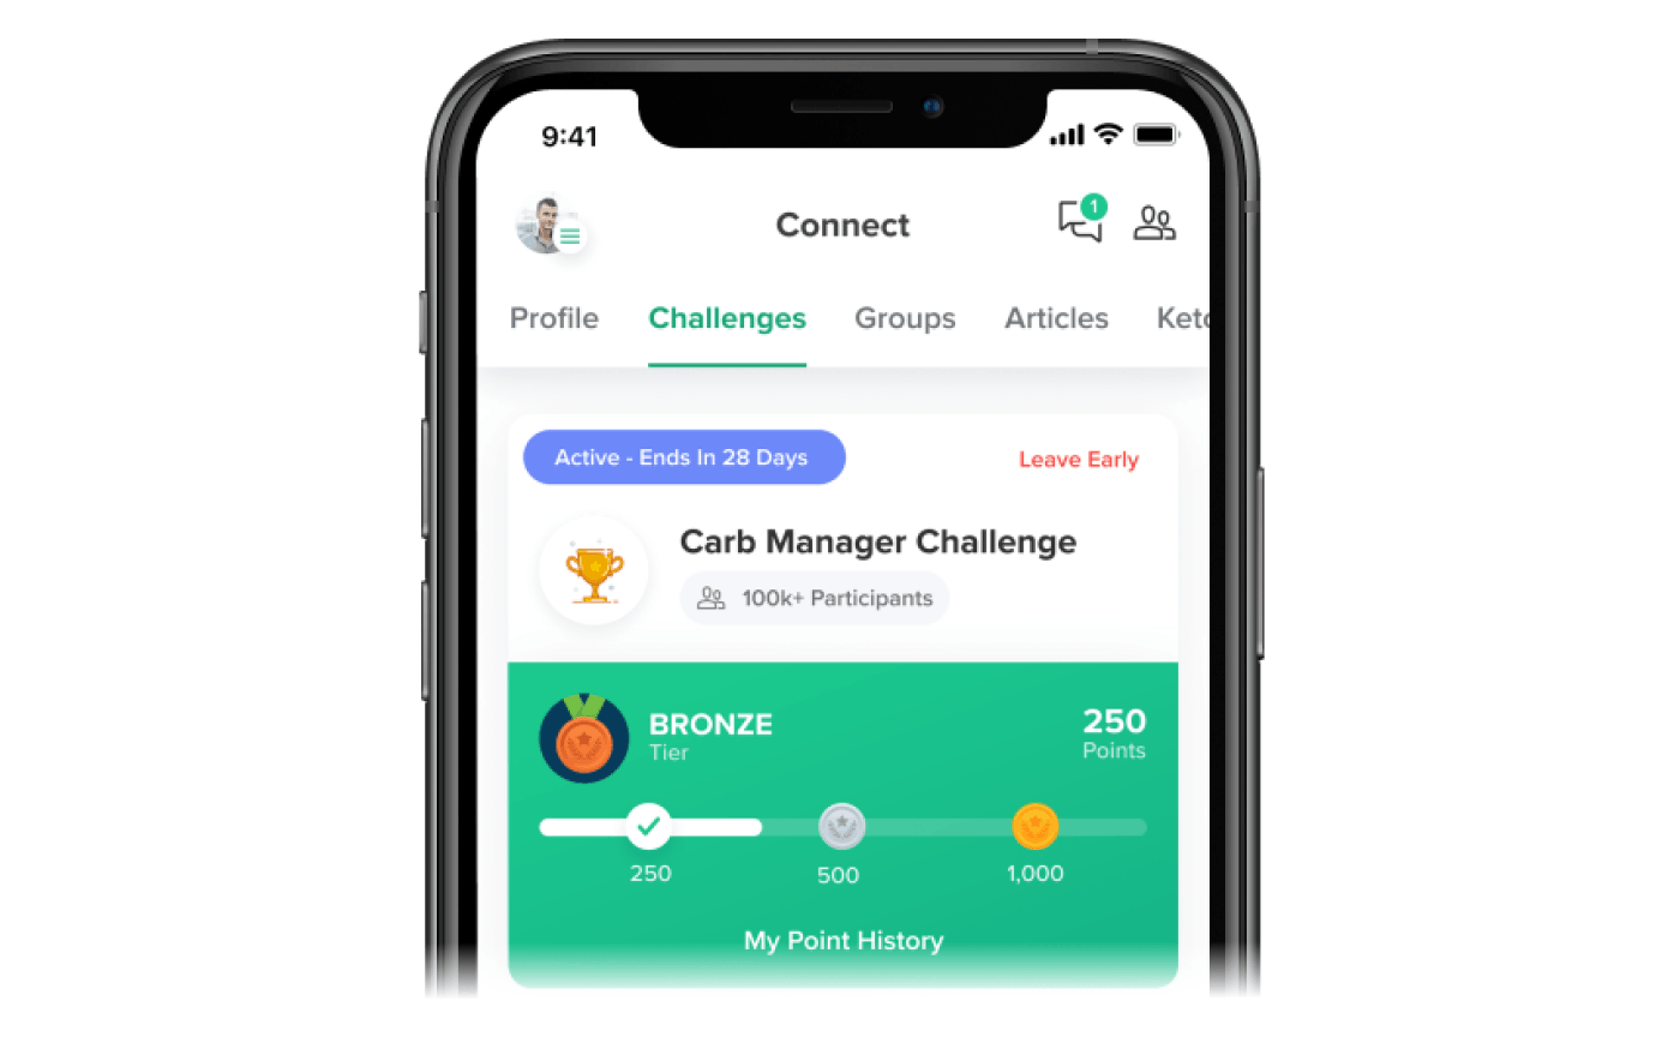 Update on Carb Manager 7